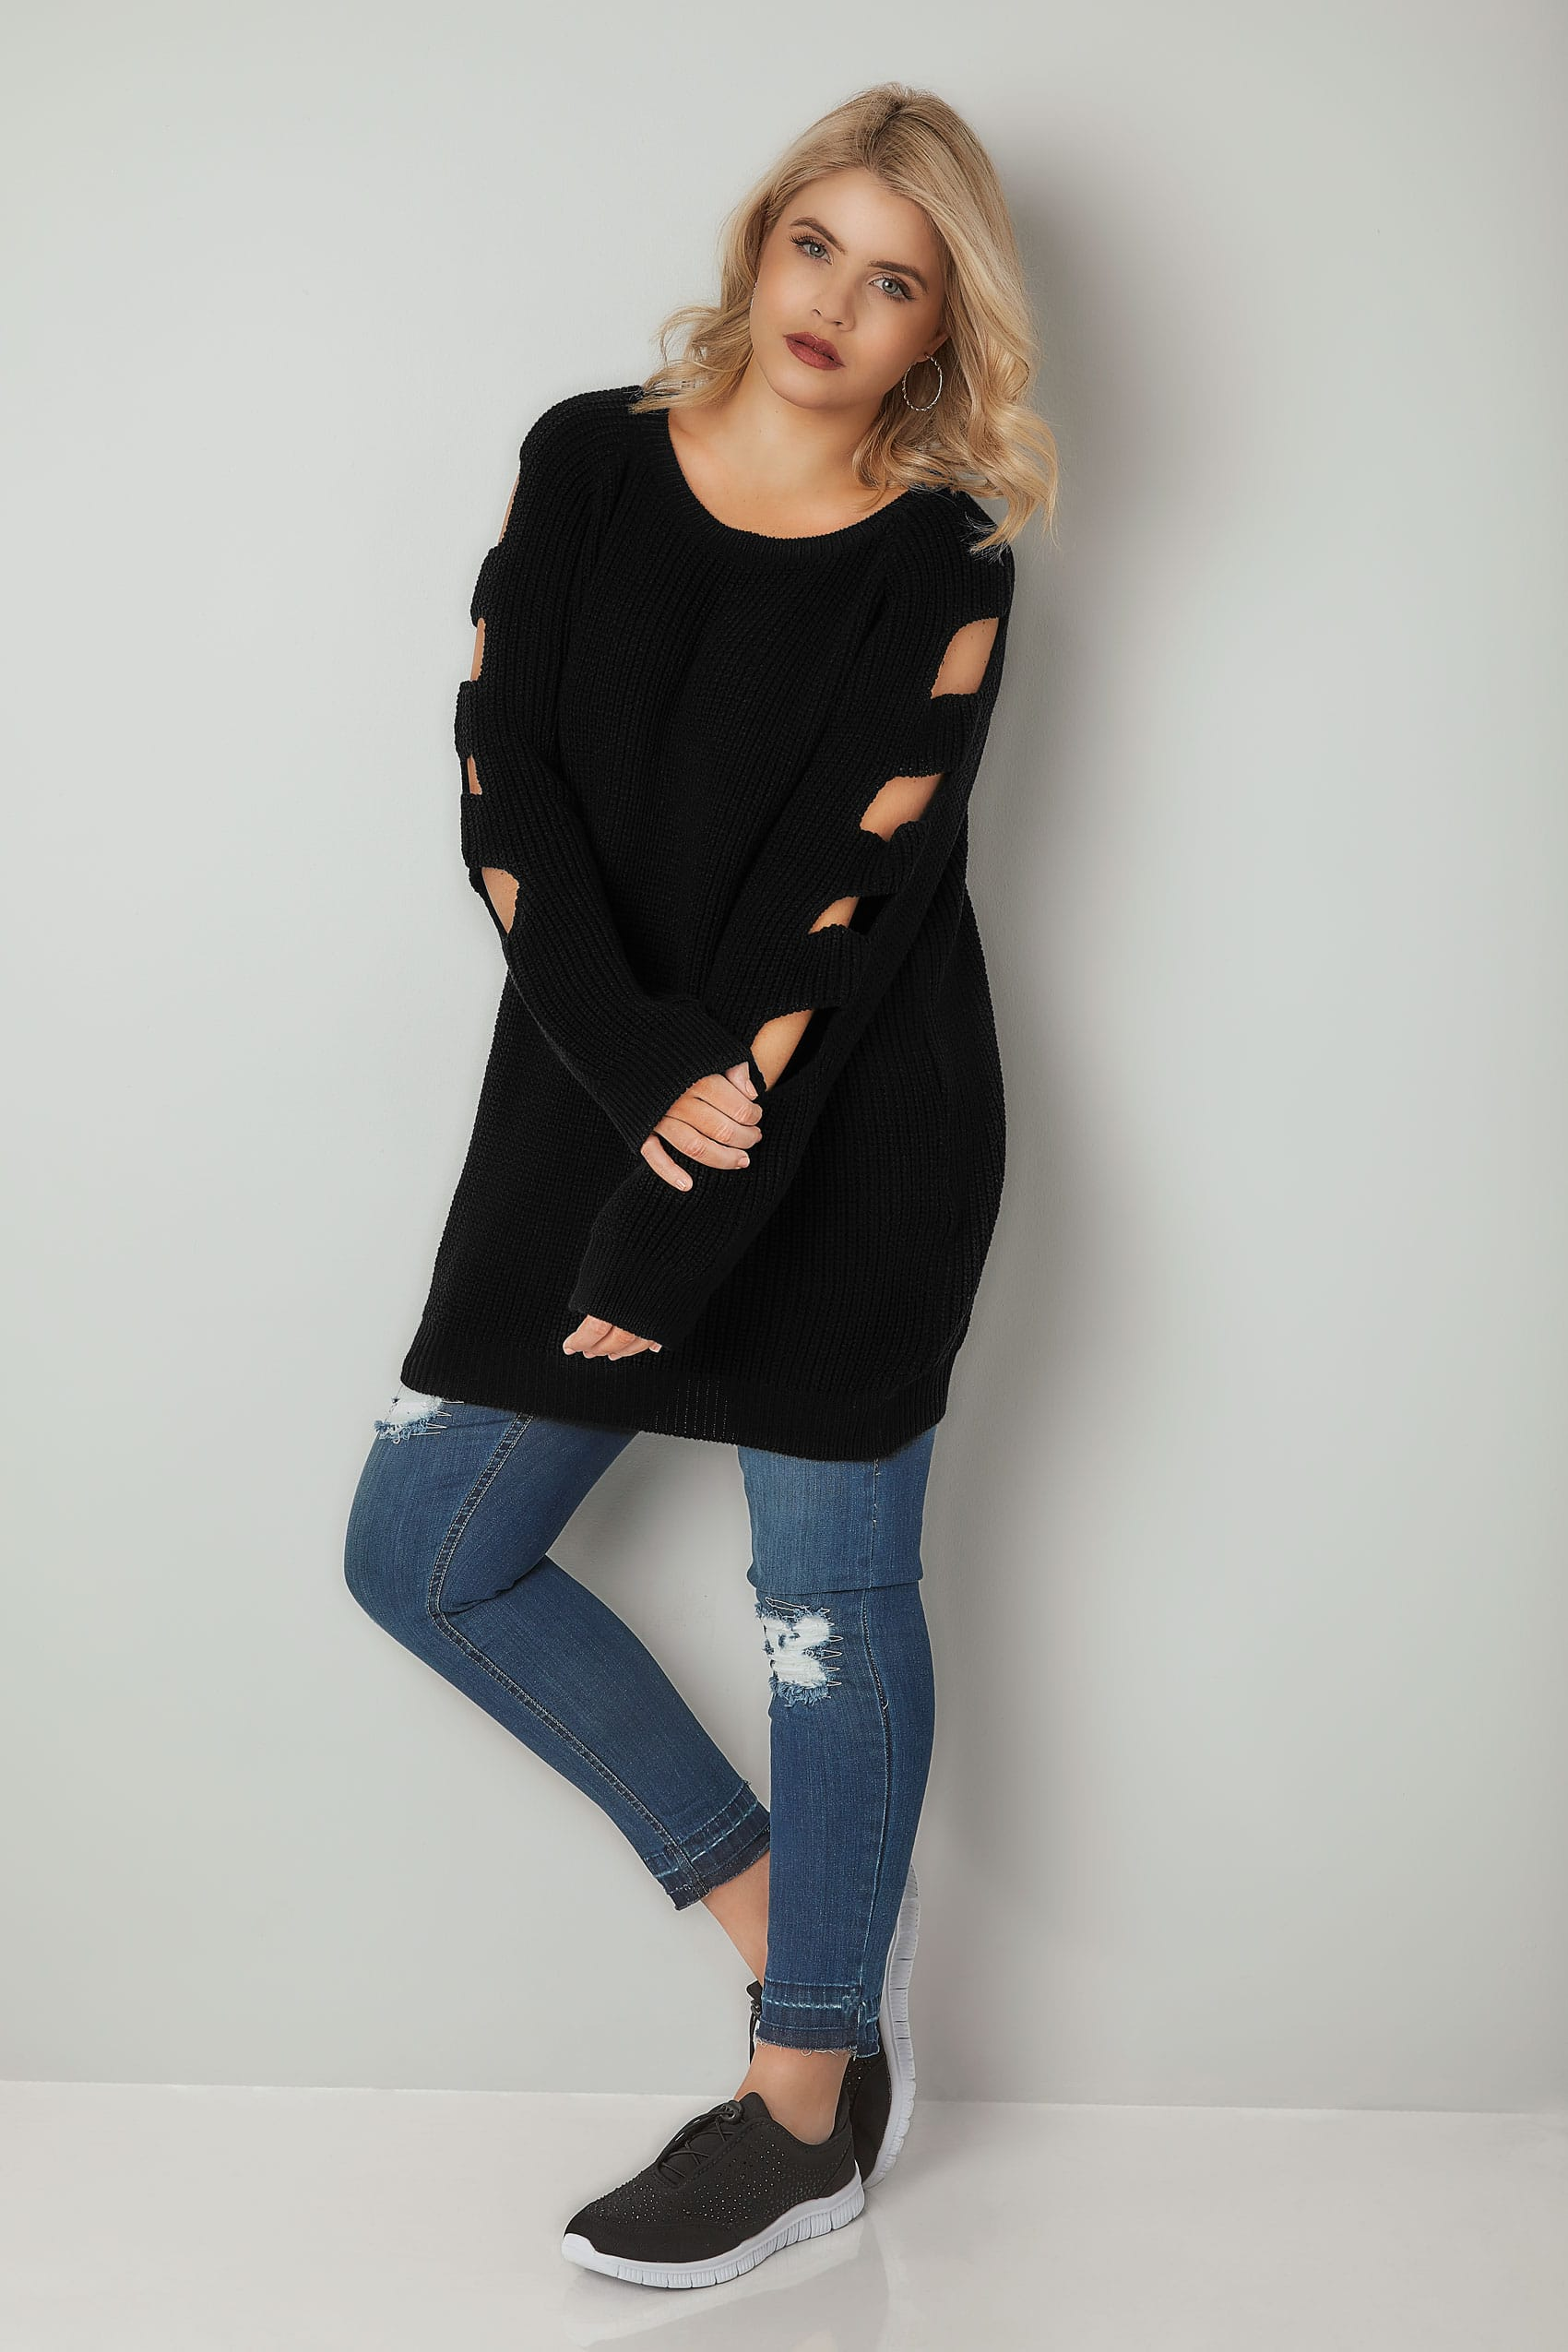 Black Longline Knitted Jumper With Cut Out Sleeves Plus